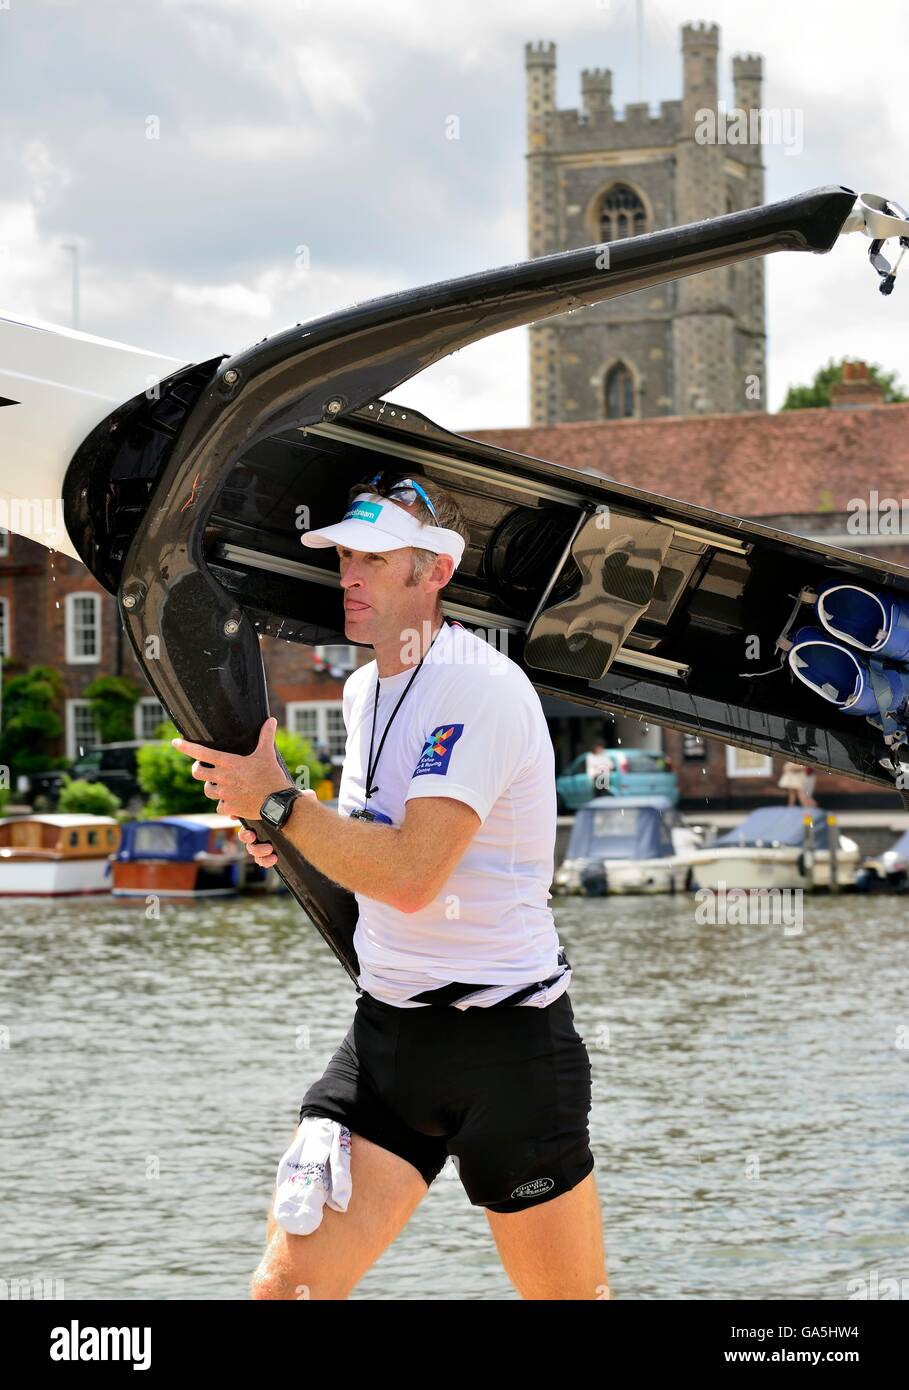 Henley-on-Thames, UK. 3rd July, 2016. Mahe Drysdale ending his campaign on Finals Day at the Henley Royal Regatta - Stock Image